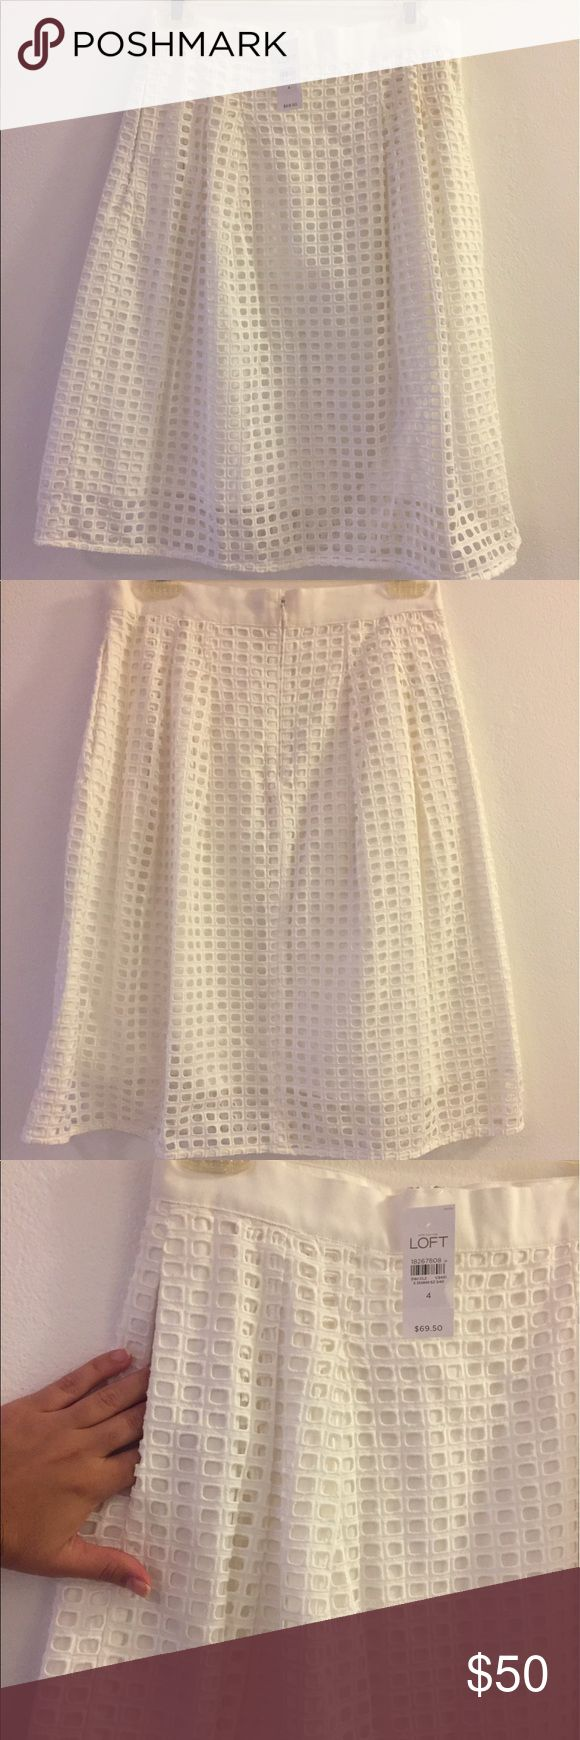 Loft GEO eyelet skirt in white Beautiful white eyelet skirt! Its knee length. NEVER WORN, NEW WITH TAG. And also.... IT HAS POCKETS!!! 😍😍 LOFT Skirts